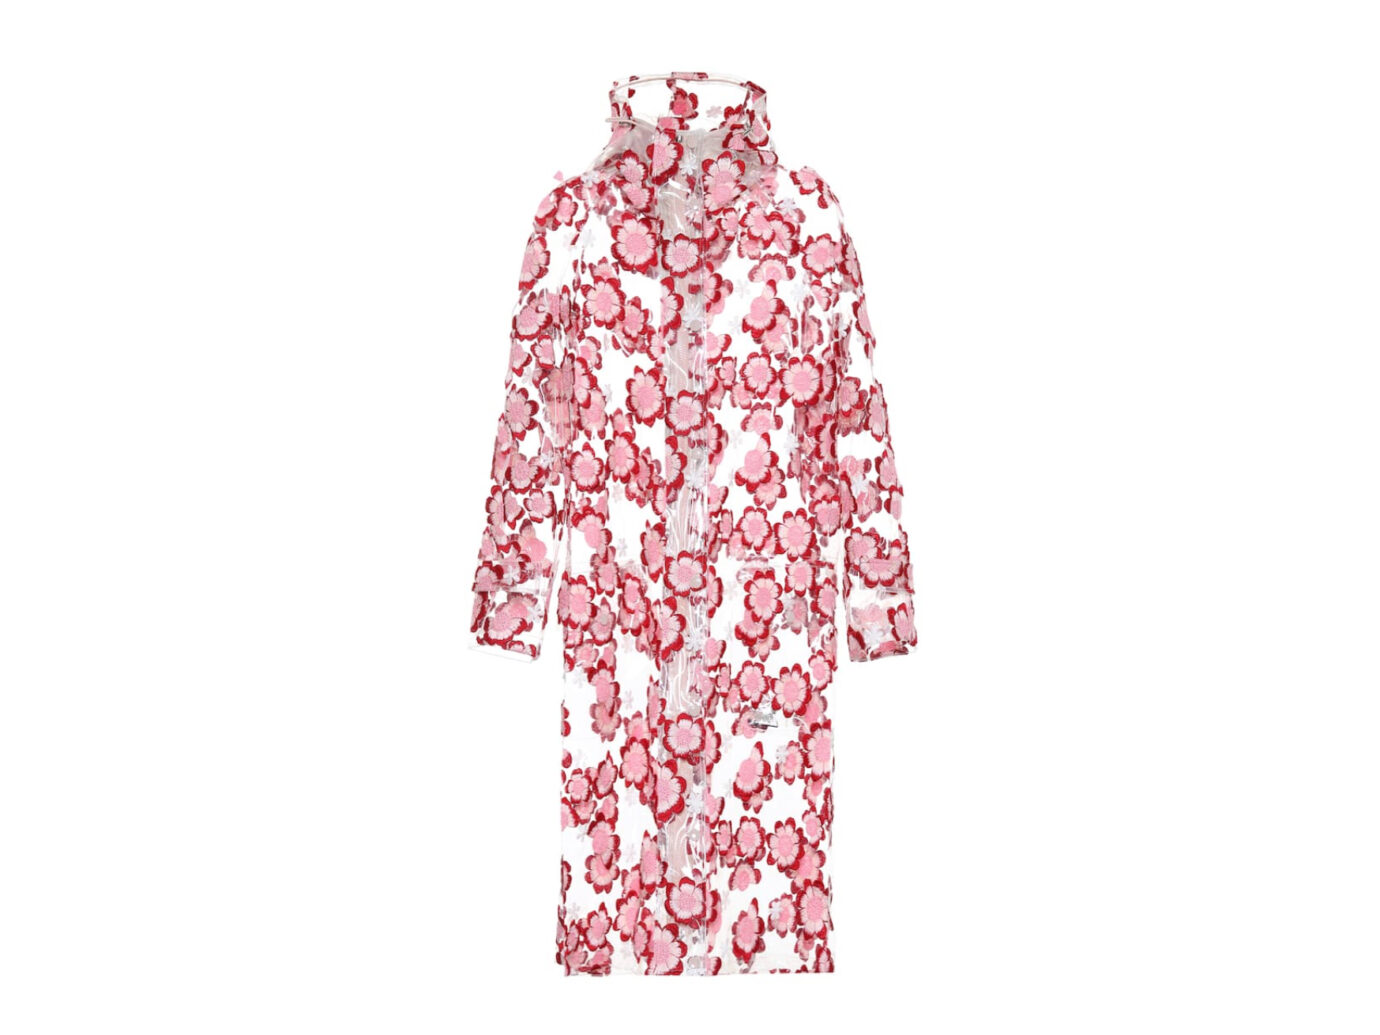 Moncler Genius Embroidered Raincoat